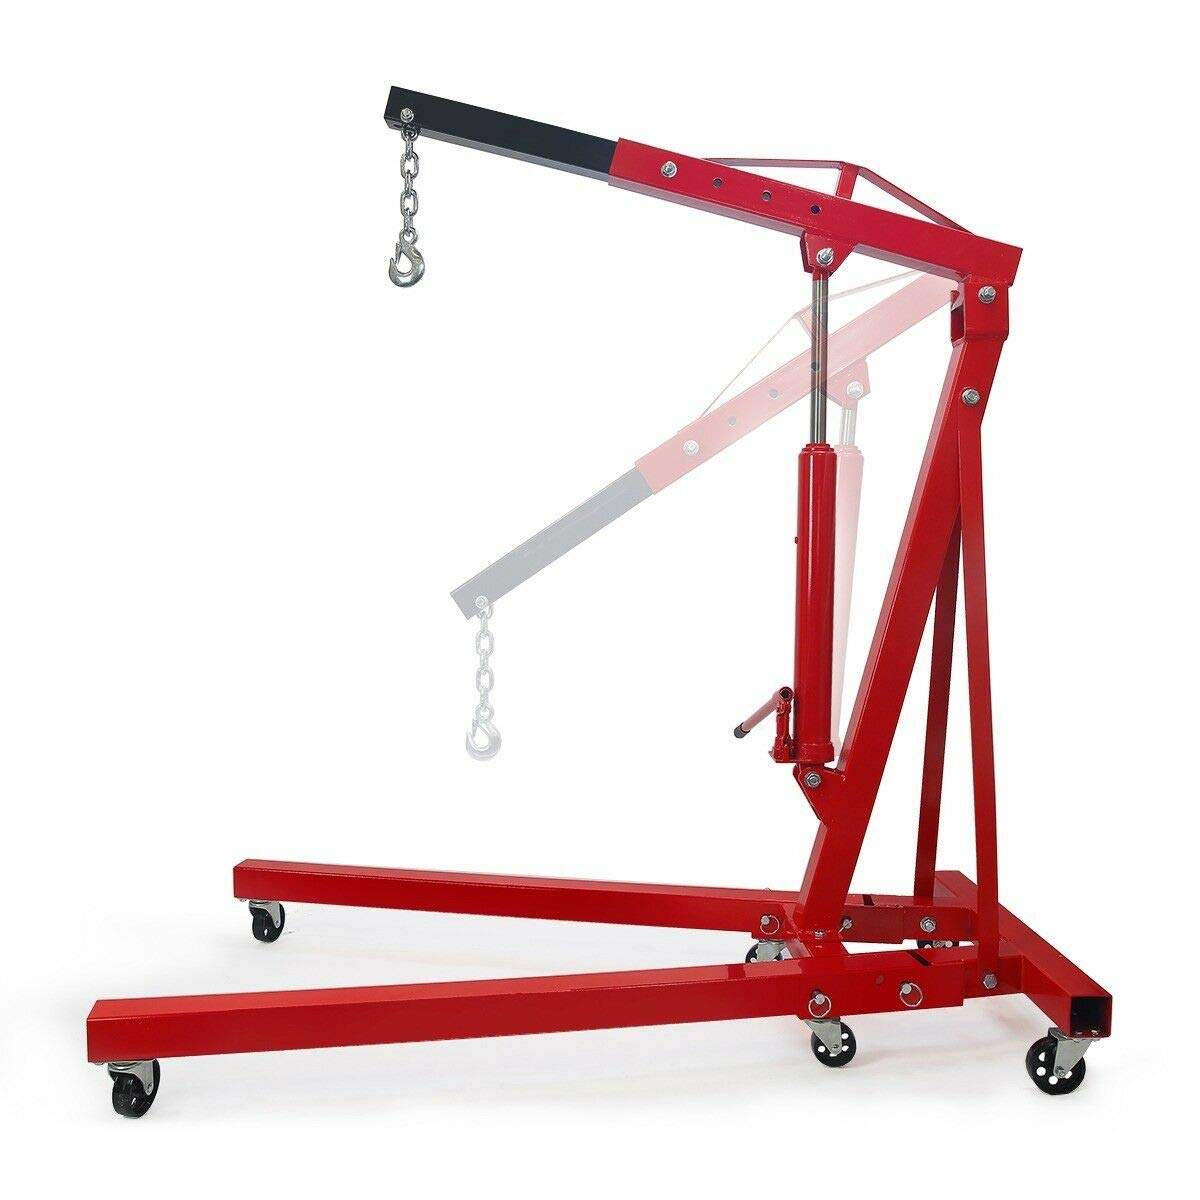 New 2 TON Engine Motor Hoist Cherry Picker Shop Crane Lift 4000 lbs Adjust 82'' to 94'', Heavy-Duty Excellent Stability for Professionals by Nice1159